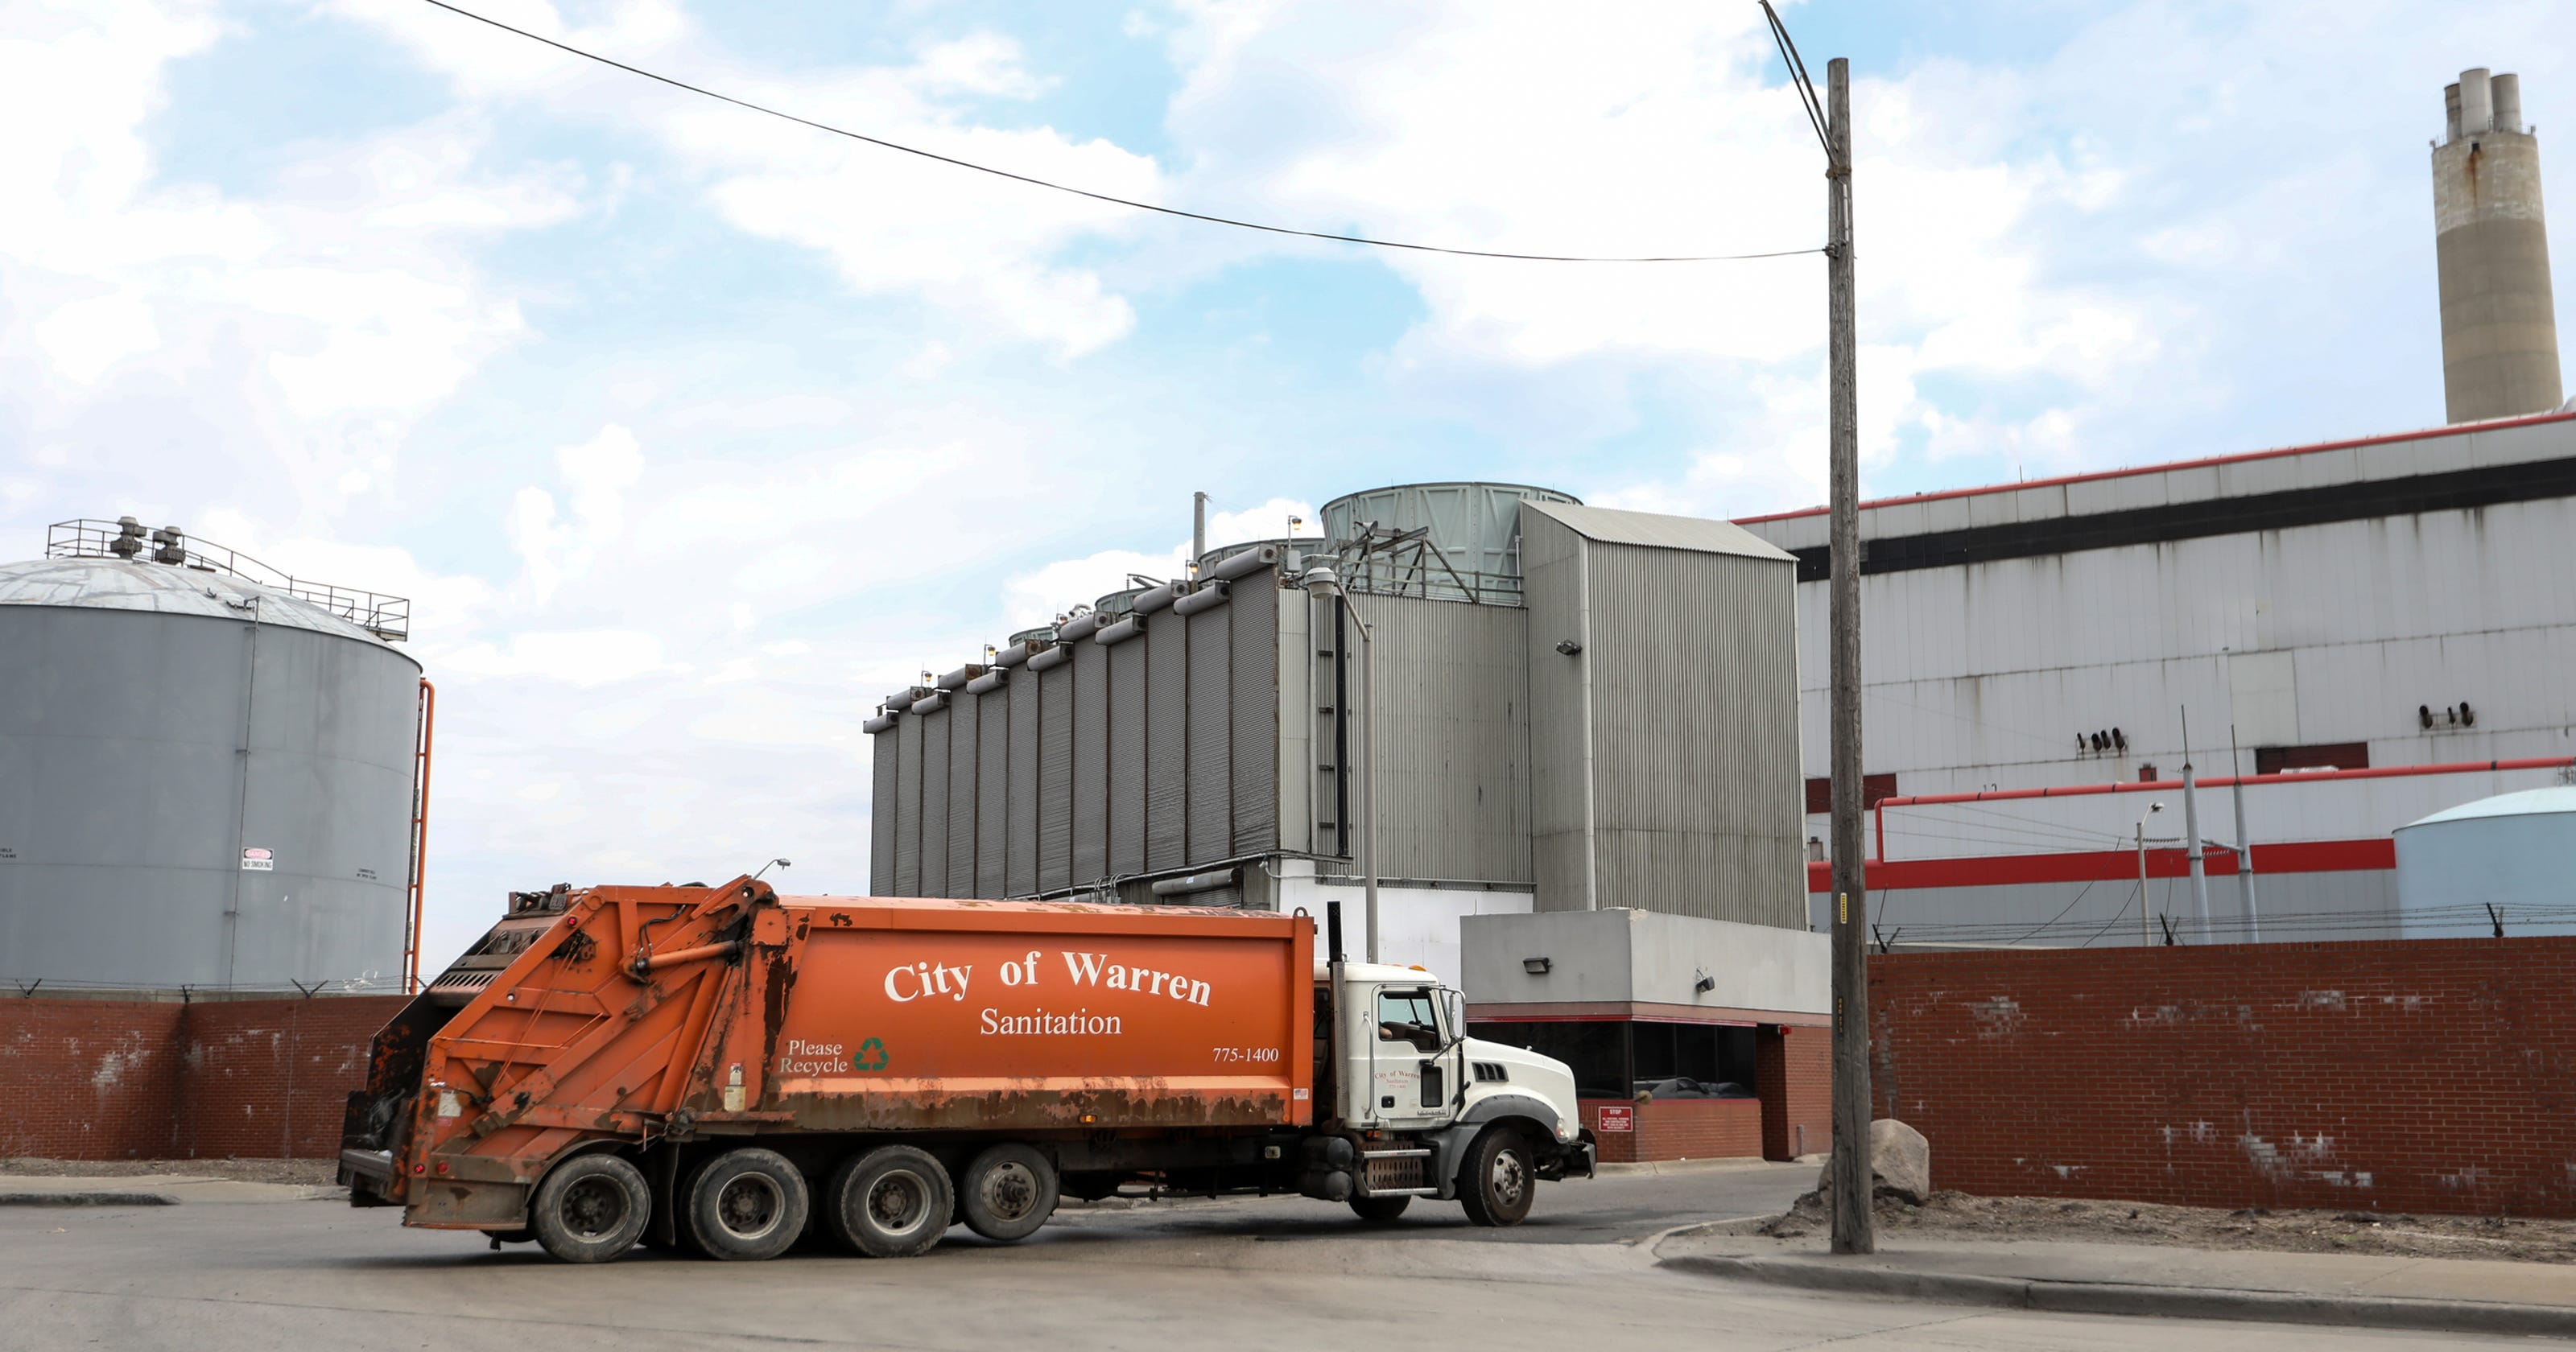 Incinerator often over the limit on pollution, where's DEQ?